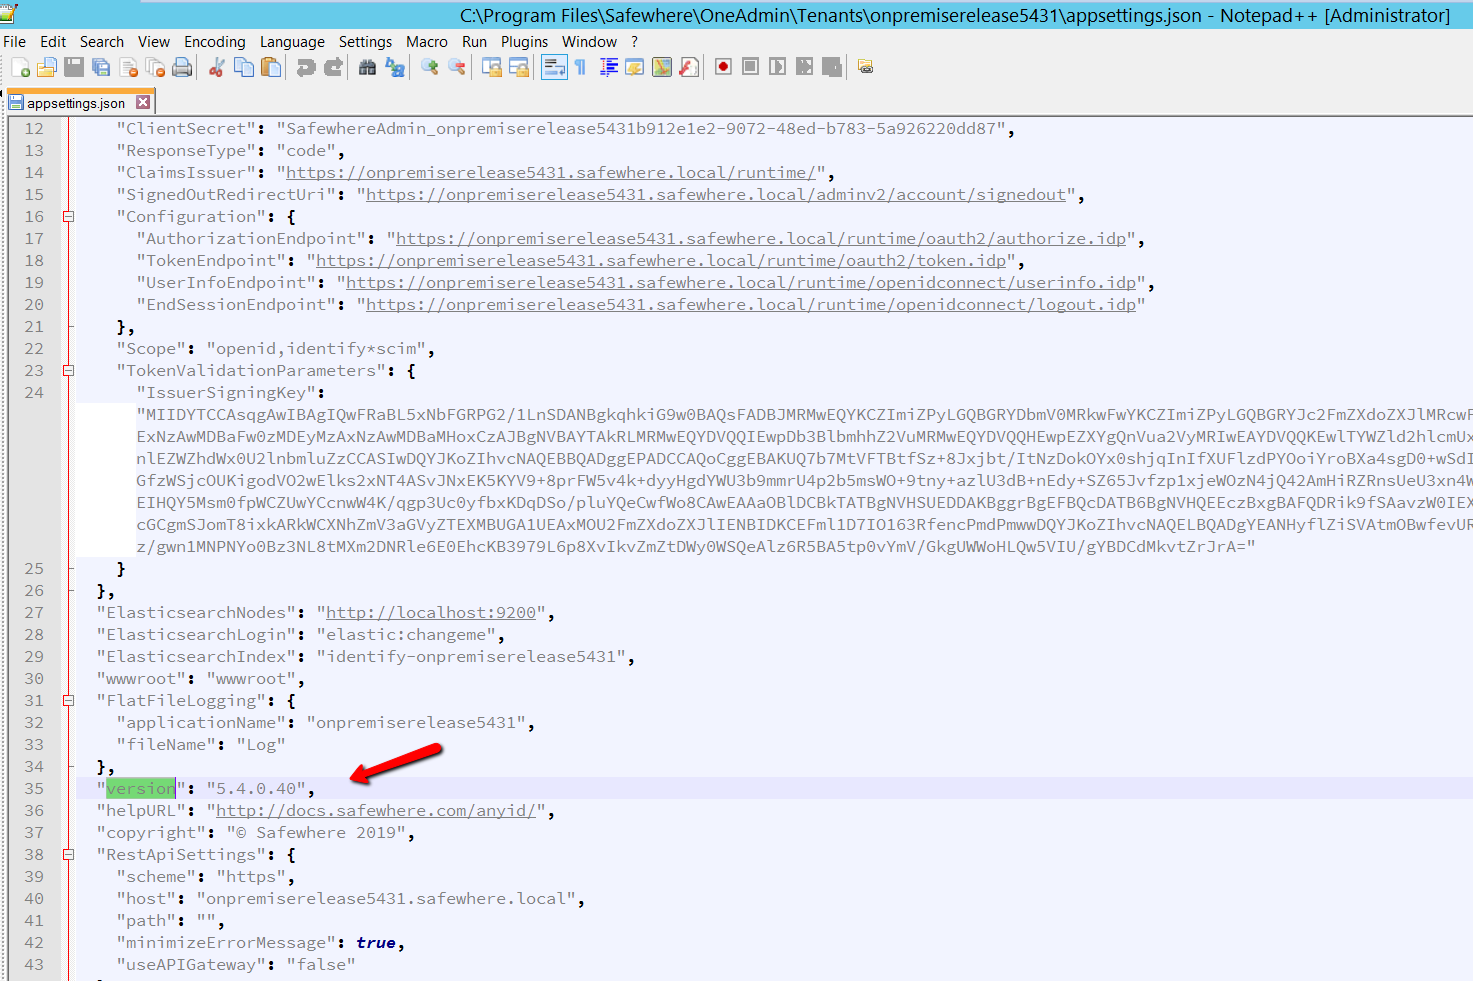 Update version in appsetting.json